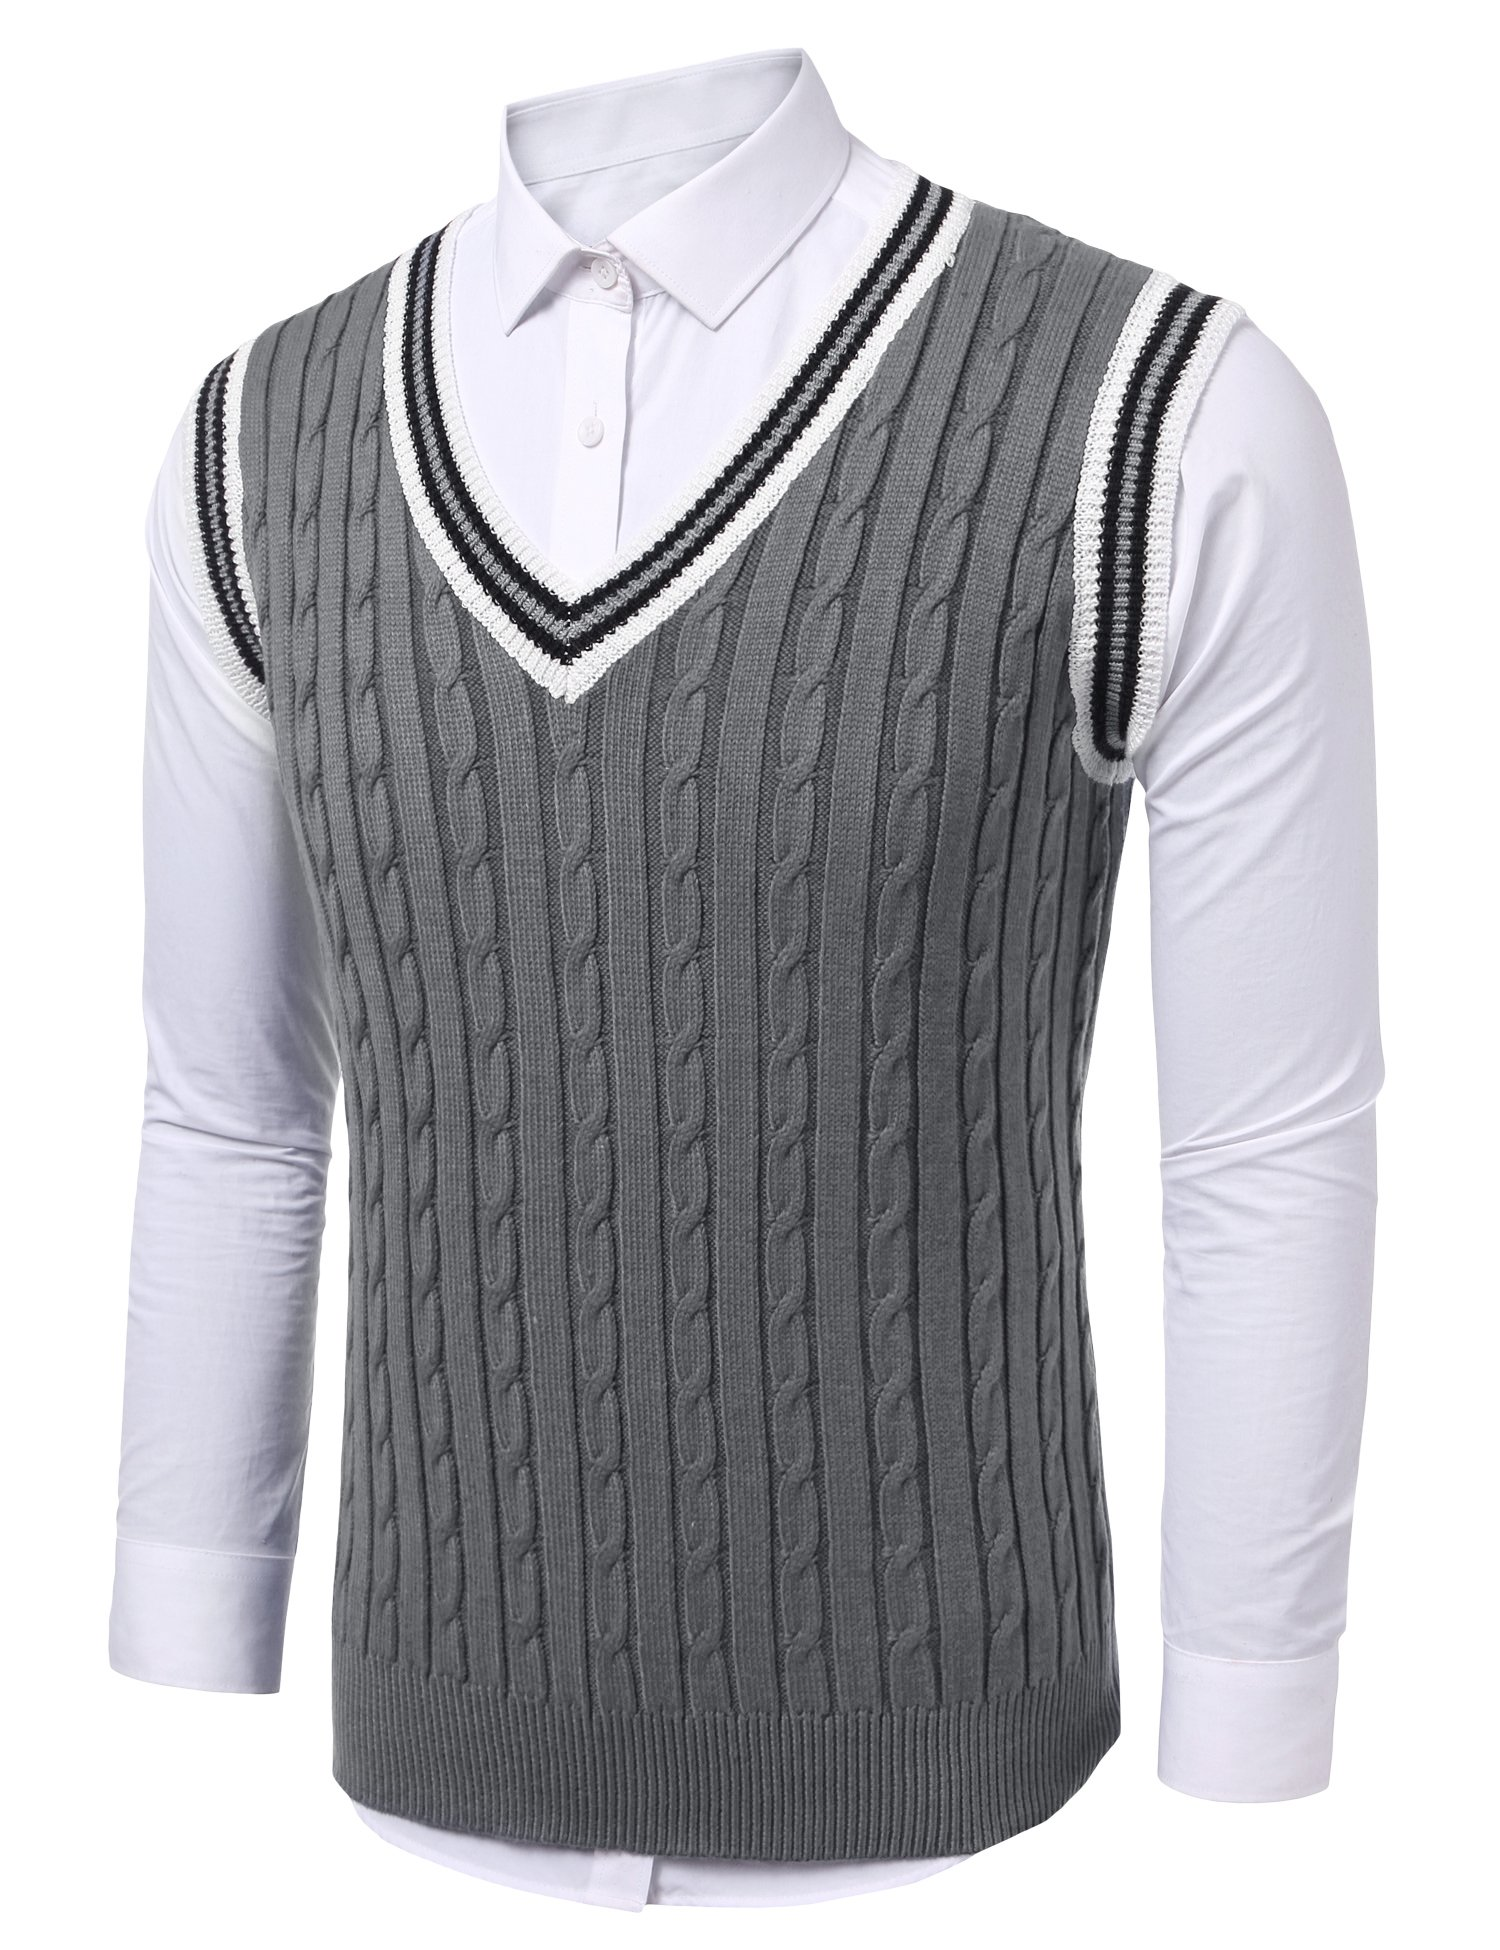 COOFANDY Mens Casual Knitted Sweater Slim Fit Pullover Cable Sweater Links-Vest